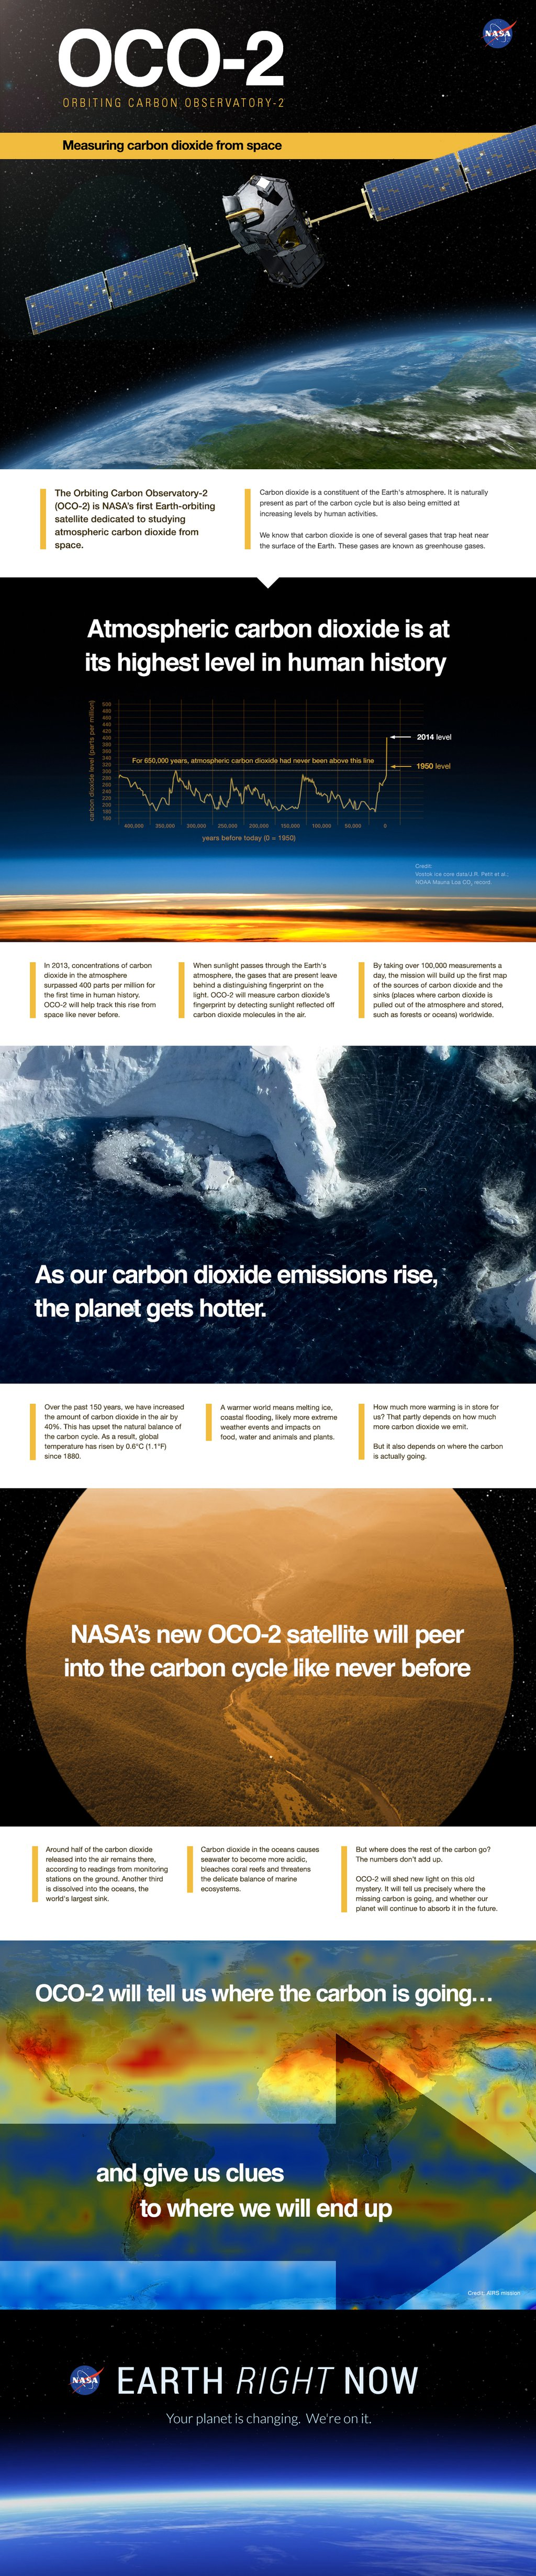 Measuring carbon dioxide from space